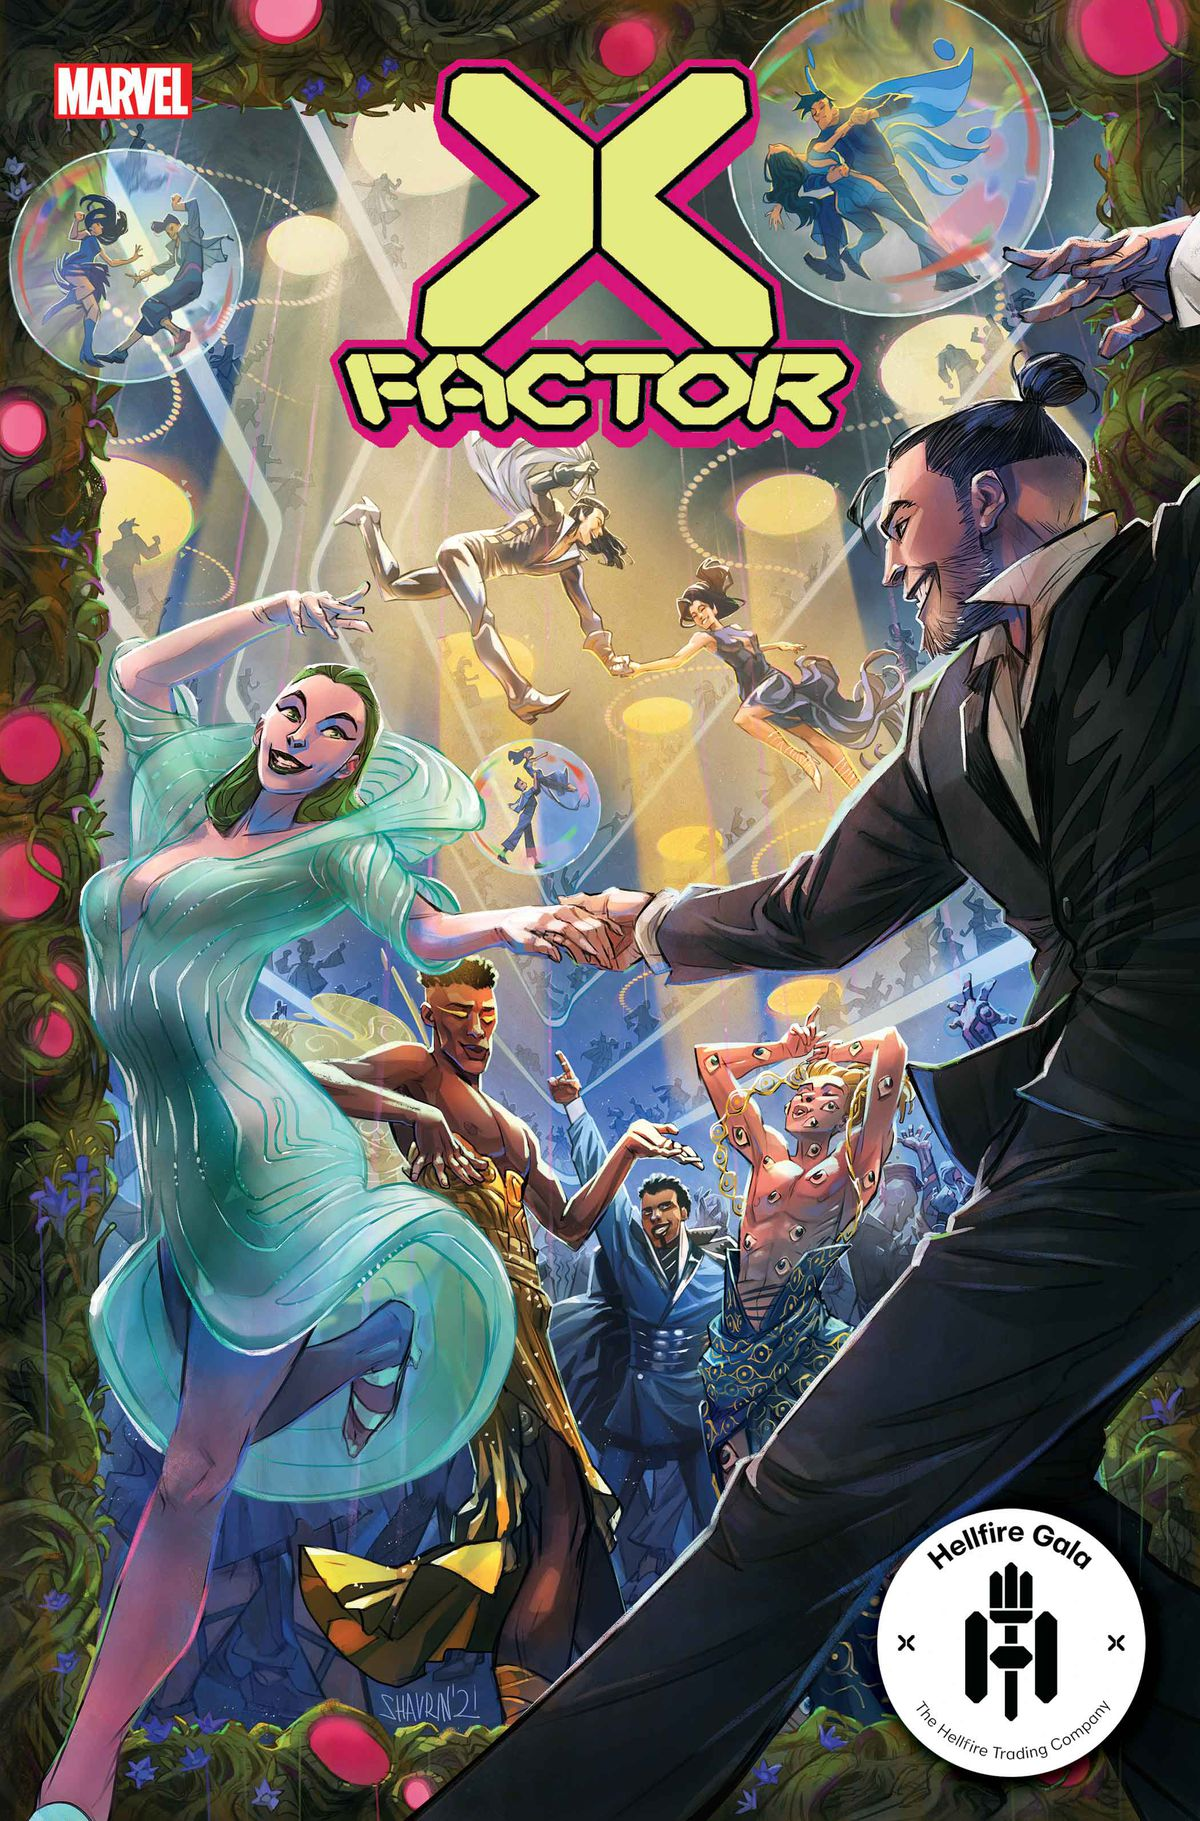 The members of X-Factor dance on the cover of X-Factor #10, Marvel Comics (2021)